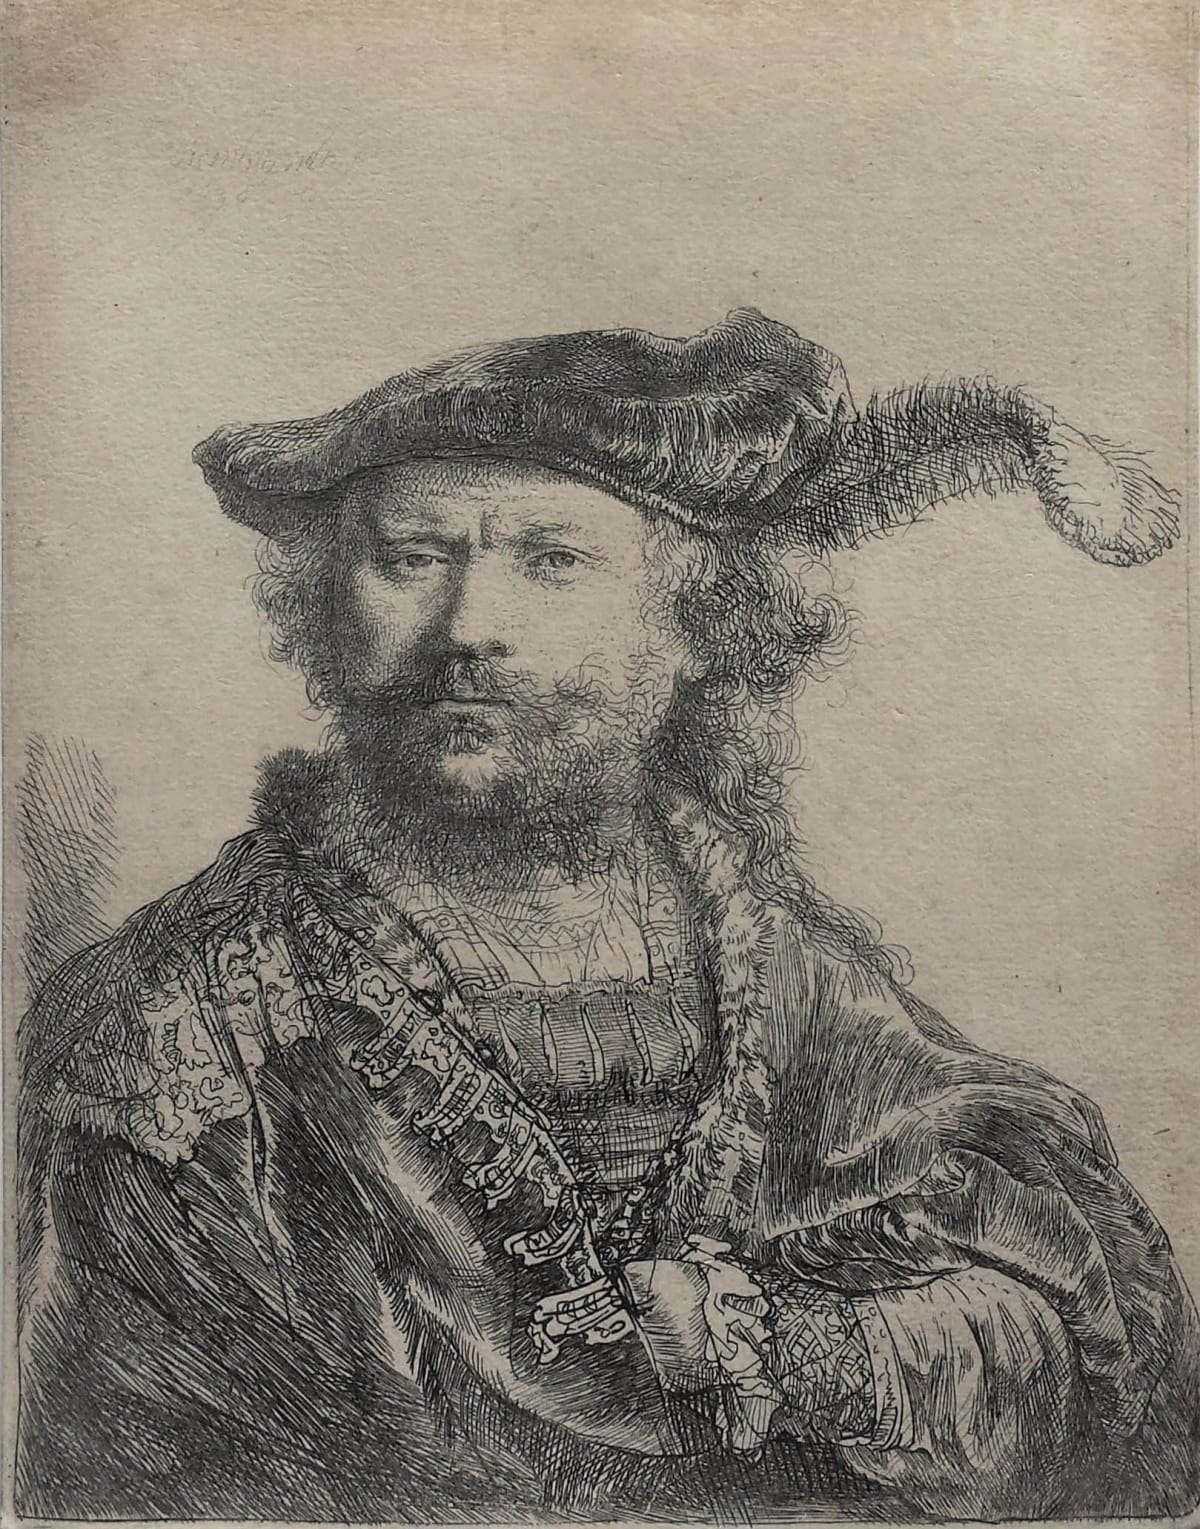 Rembrandt Hamensz. Van Rijn, Self-portrait in a velvet cap with plume, 1638 Etching 13.4 x 10.3 cm New Hollstein 170, 2nd state (of 4), with the jaw under the left ear clearly delineated but before the posthumous rework. Watermark: Arms of Bristol A.a